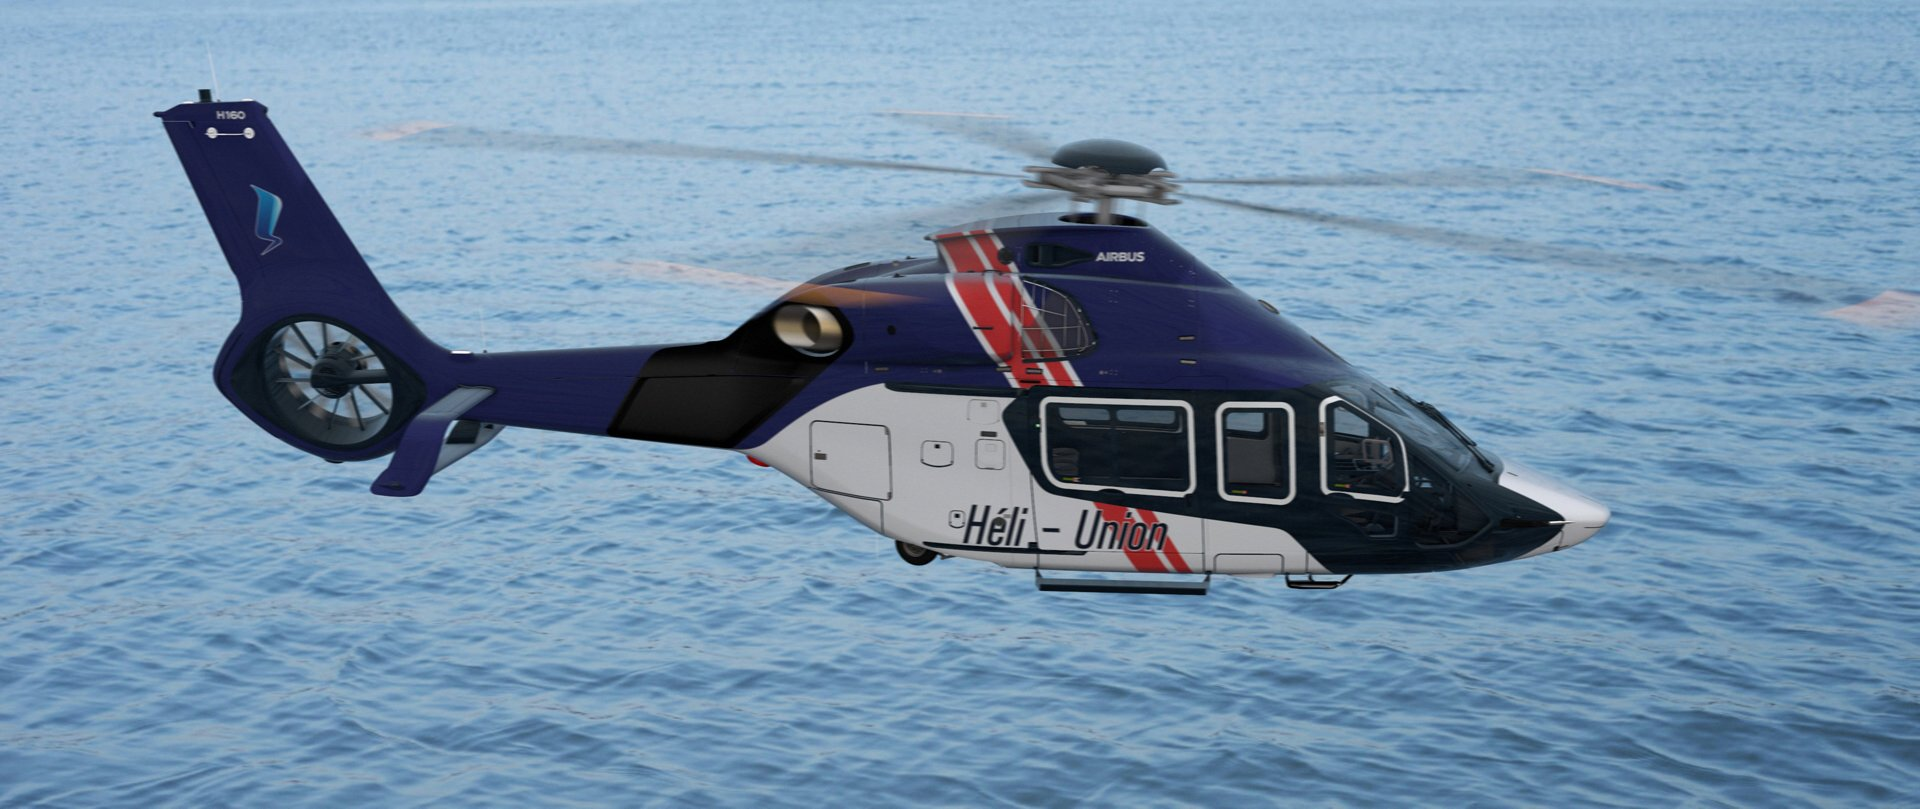 Airbus Helicopters and its historical partner Héli-Union have signed a contract for the purchase of two multi-mission H160s to address a wide range of operations.